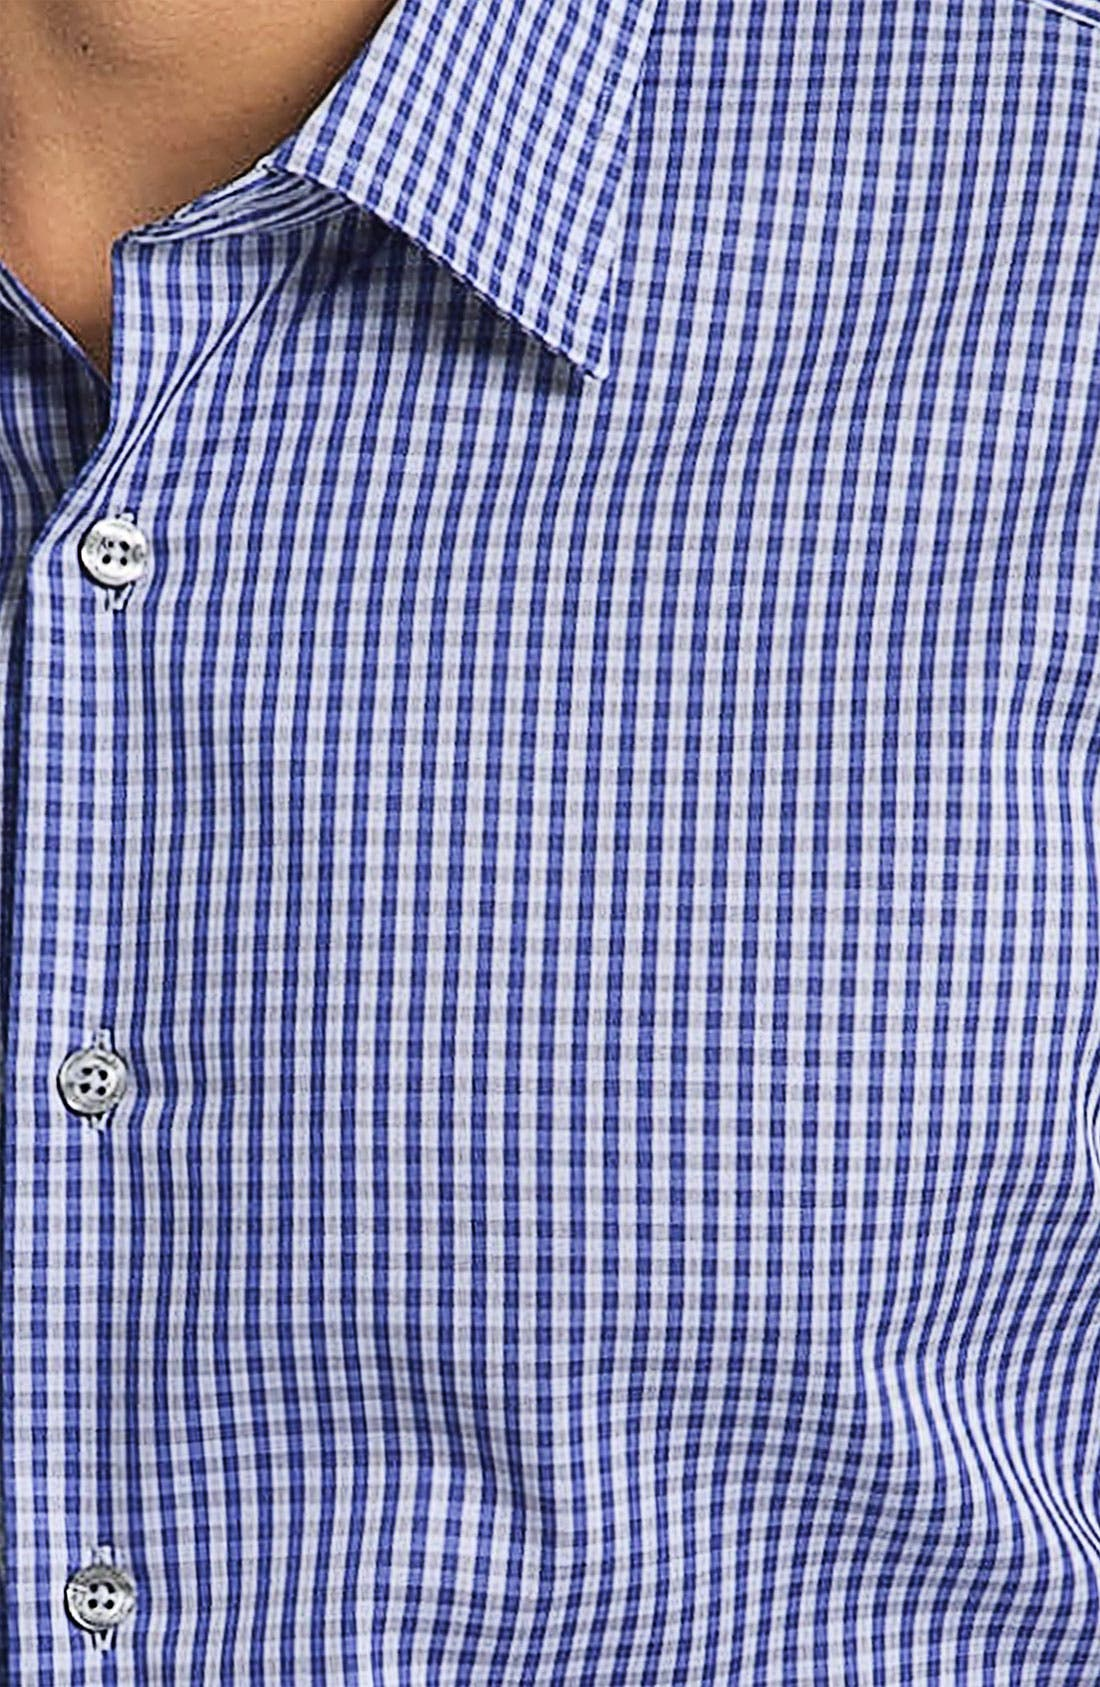 Gingham Check Dress Shirt,                             Alternate thumbnail 3, color,                             414